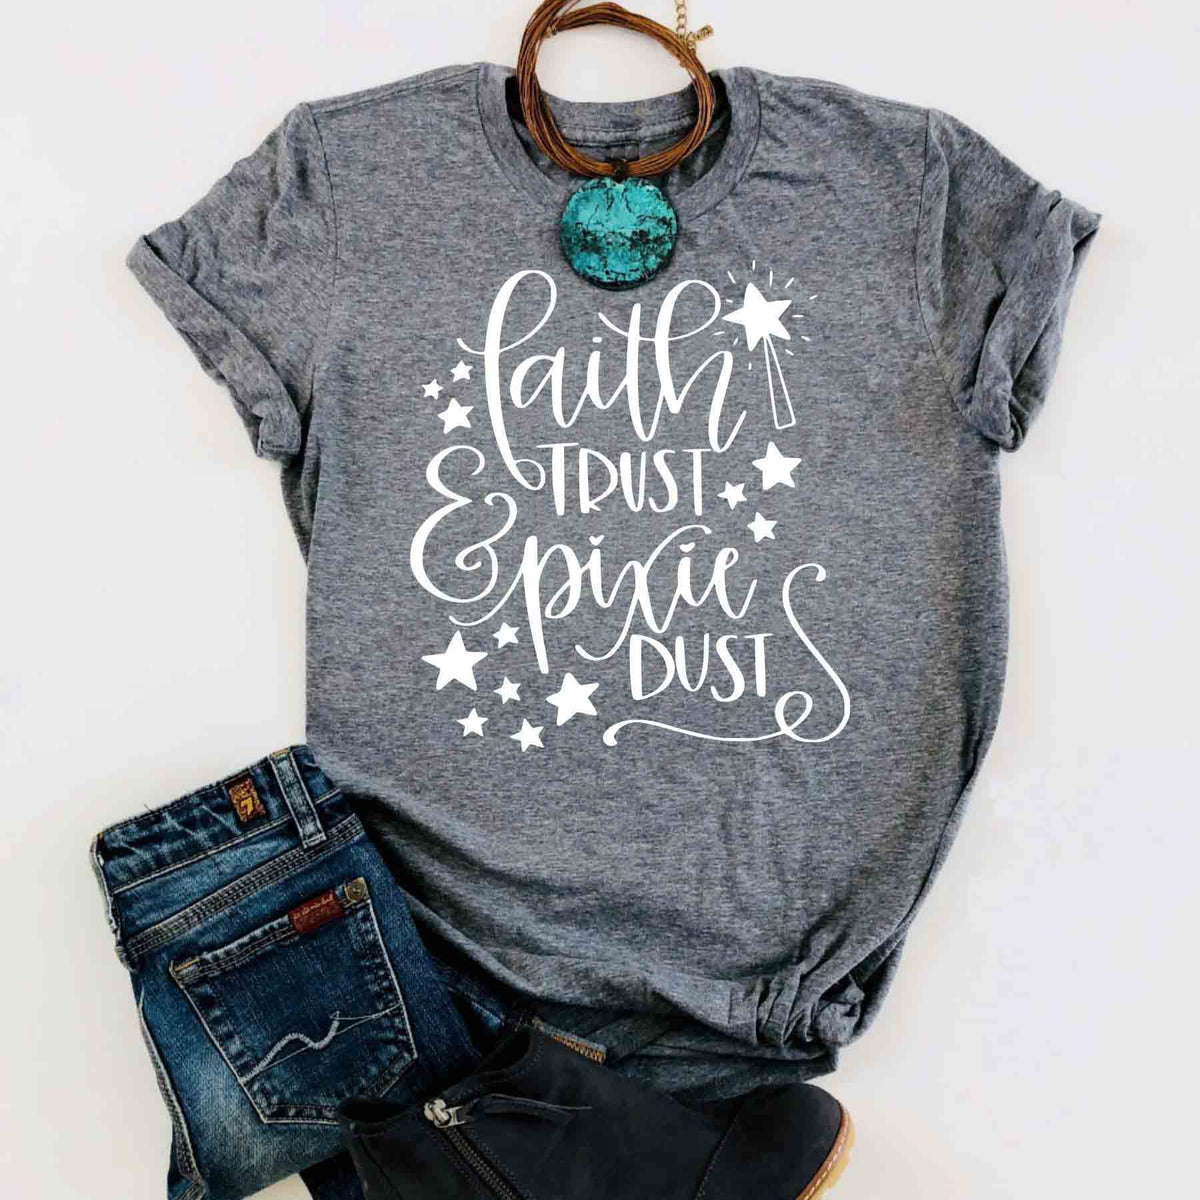 Faith Trust & Pixie Dust t-shirt young girl style women fashion cotton casual Christian t-shirt pretty cotton slogan vintage tee